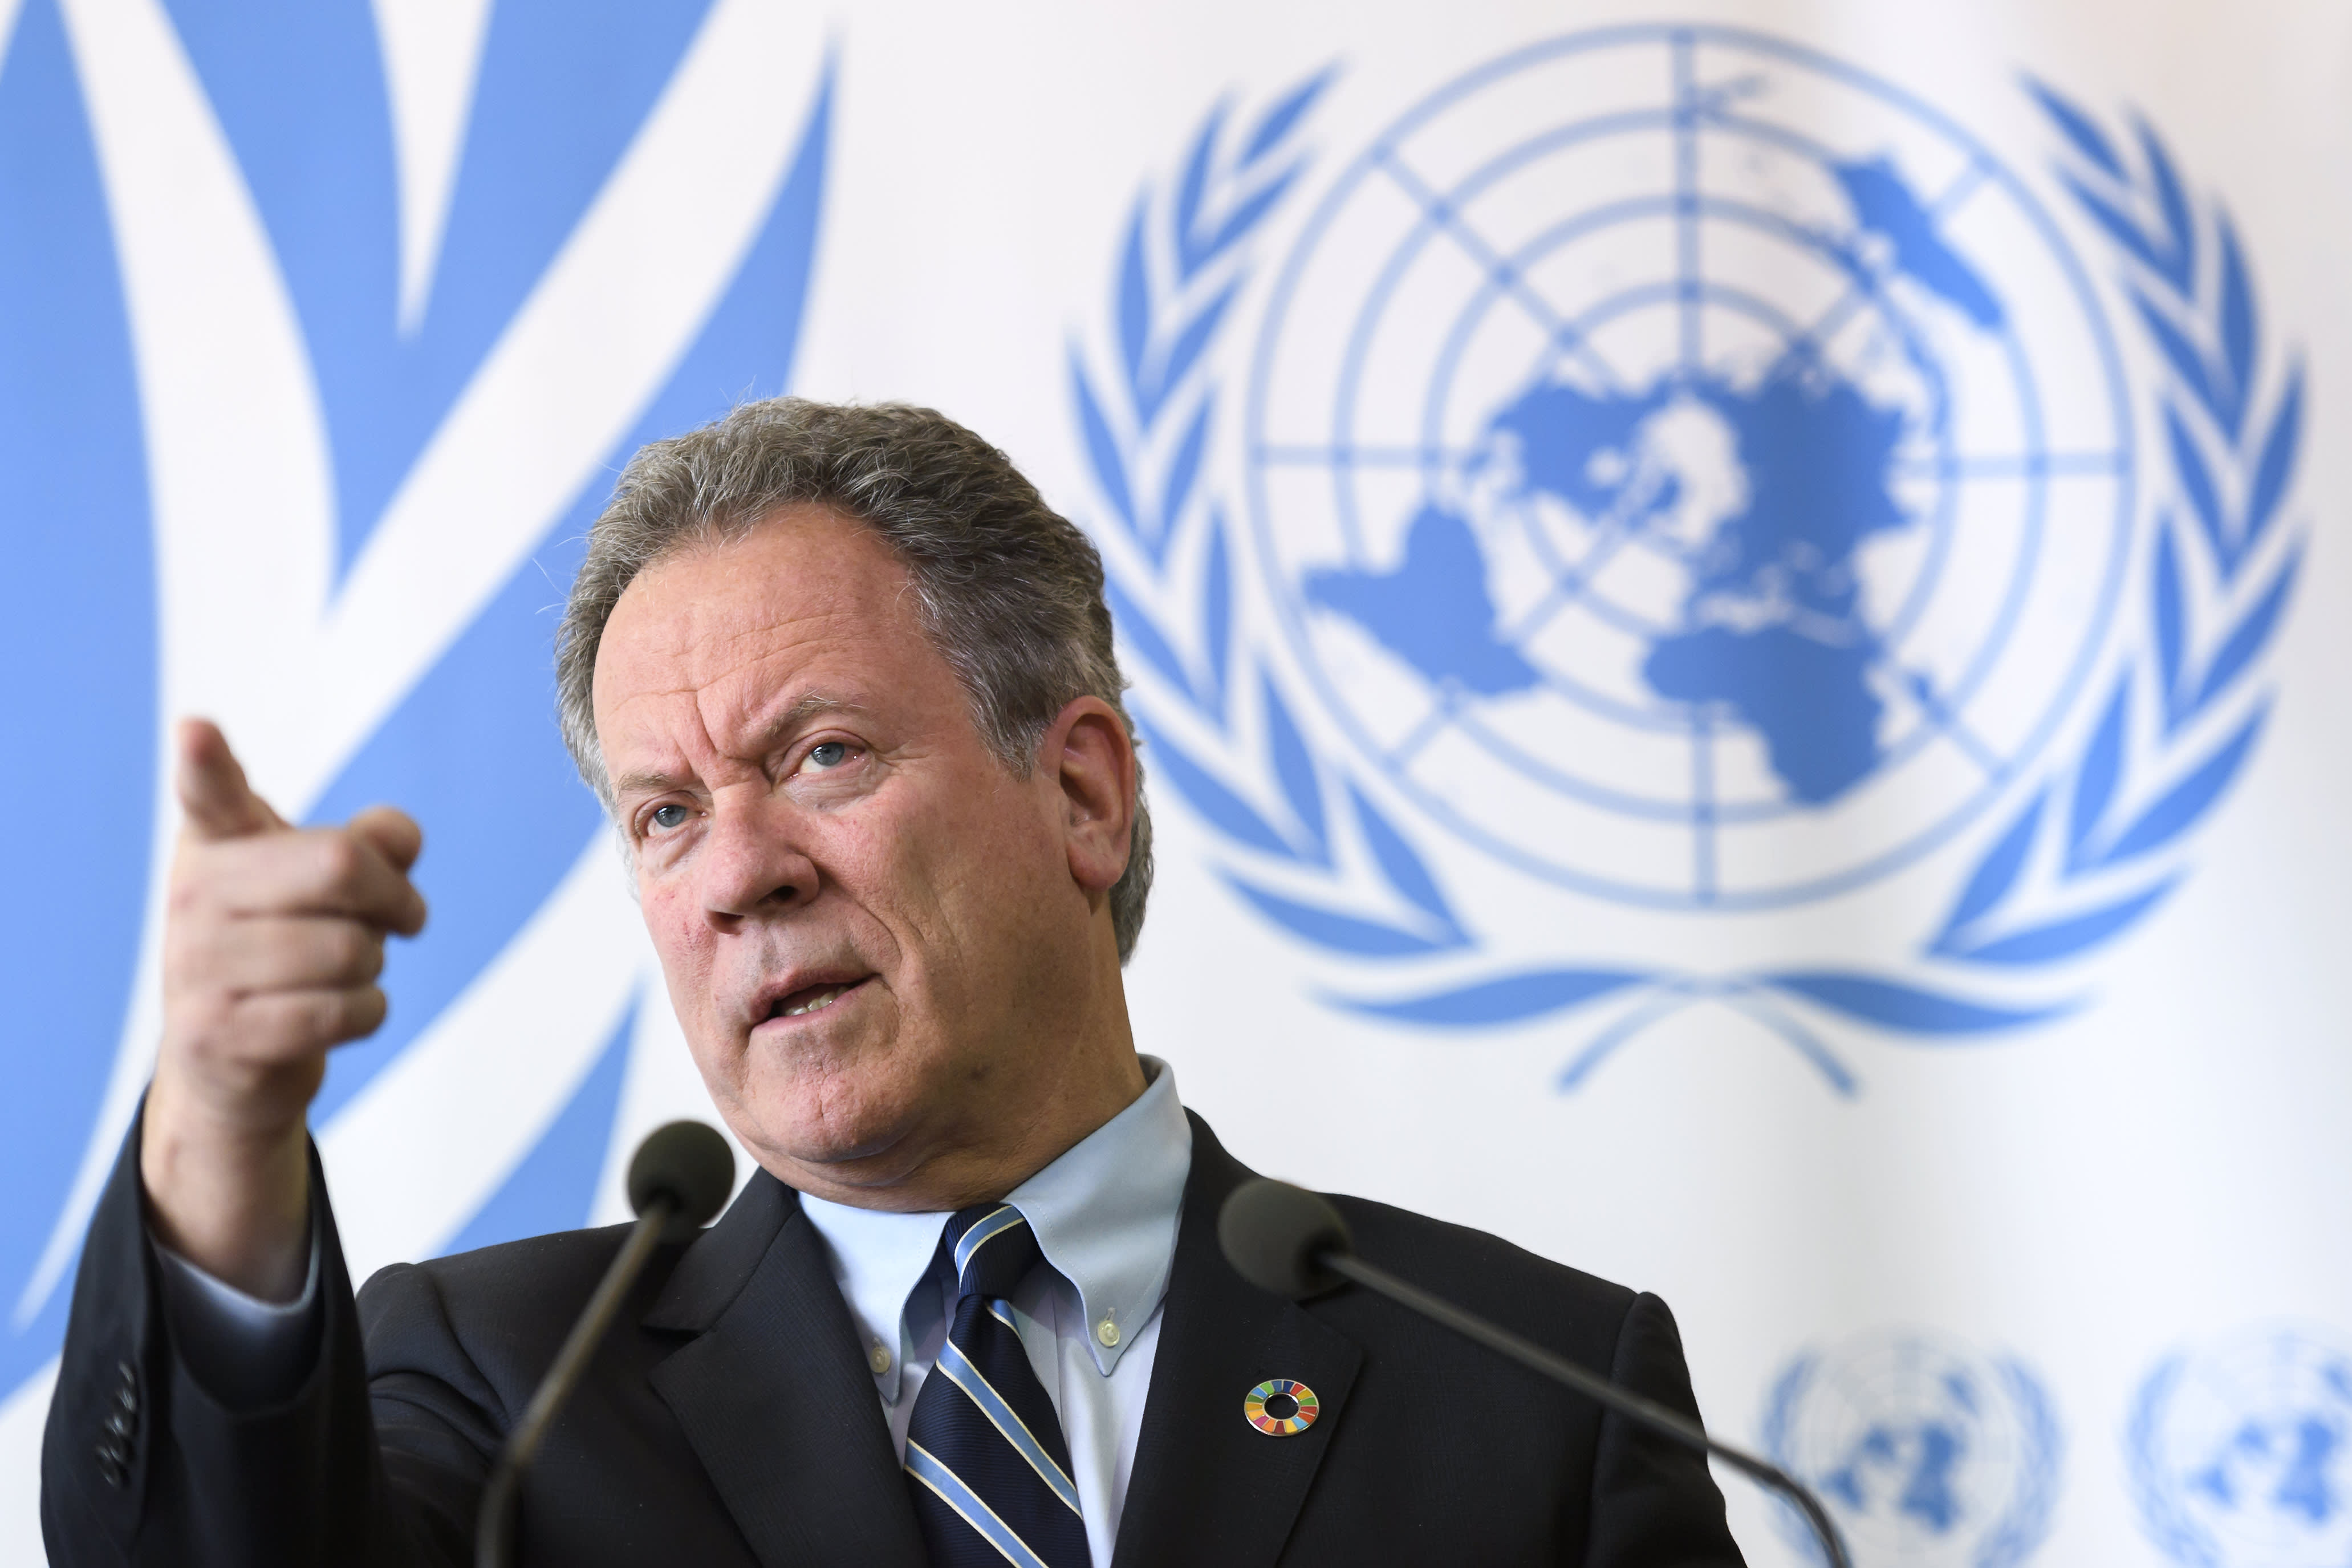 Billionaires urged to combat world hunger by UN food chief: 'Do the right thing'